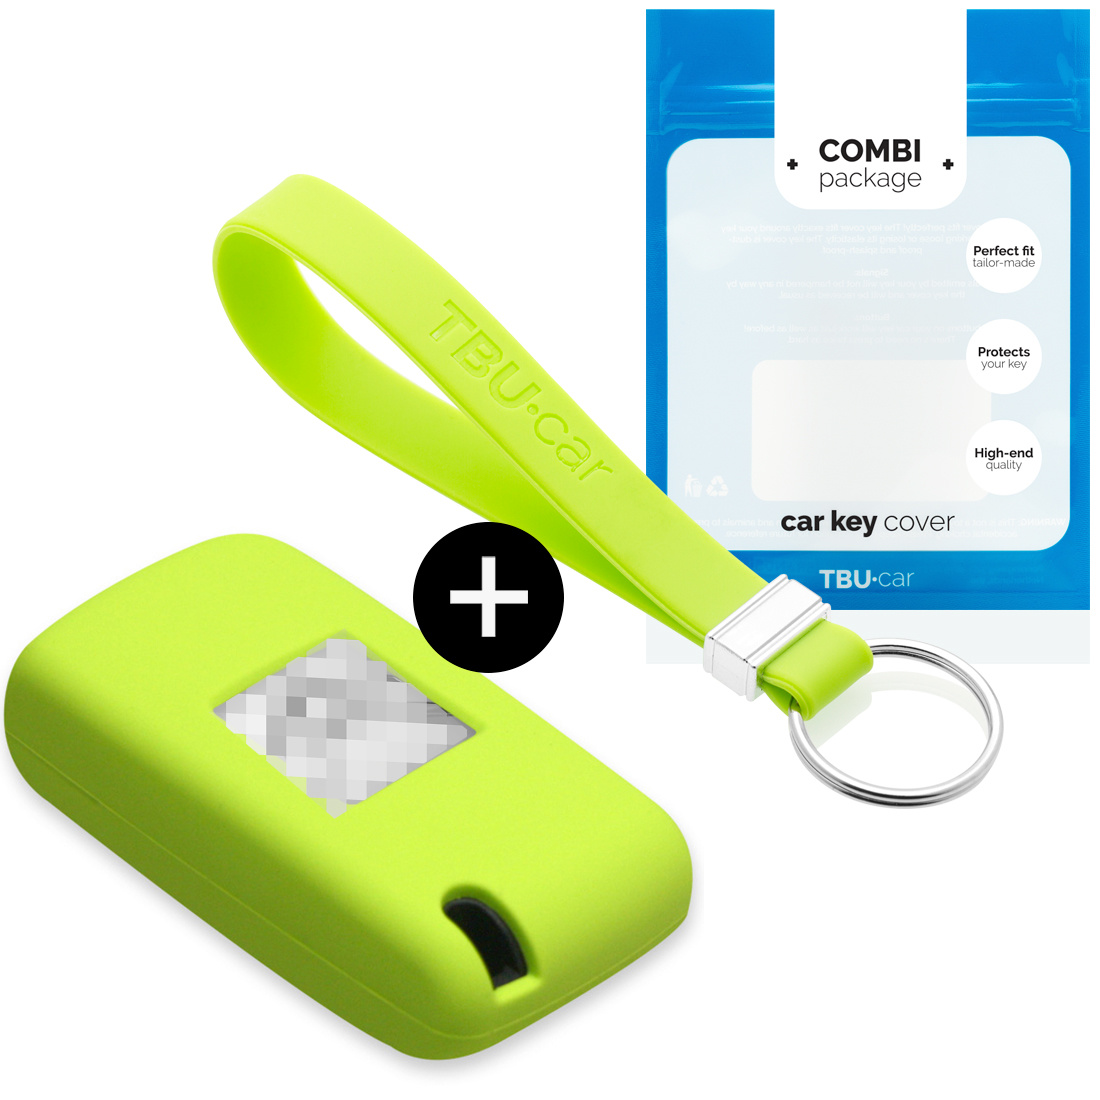 TBU car TBU car Car key cover compatible with Citroën - Silicone Protective Remote Key Shell - FOB Case Cover - Lime green